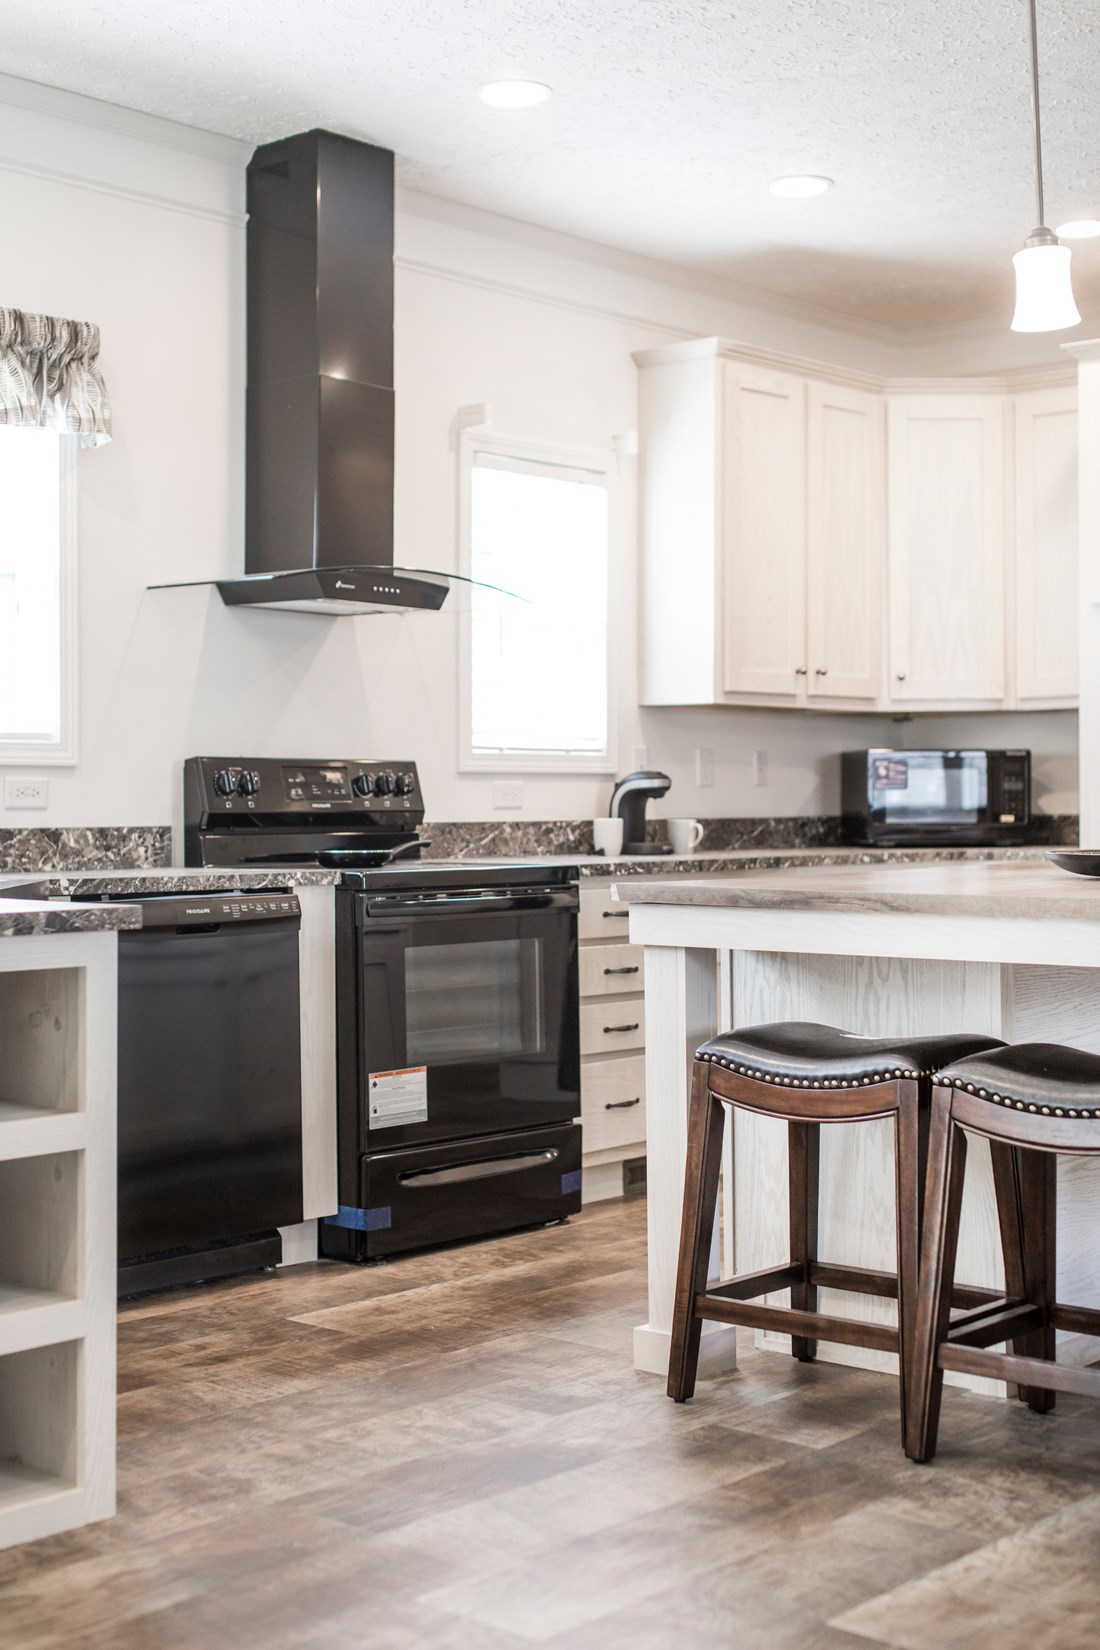 The 3558 JAMESTOWN Kitchen. This Manufactured Mobile Home features 3 bedrooms and 2 baths.